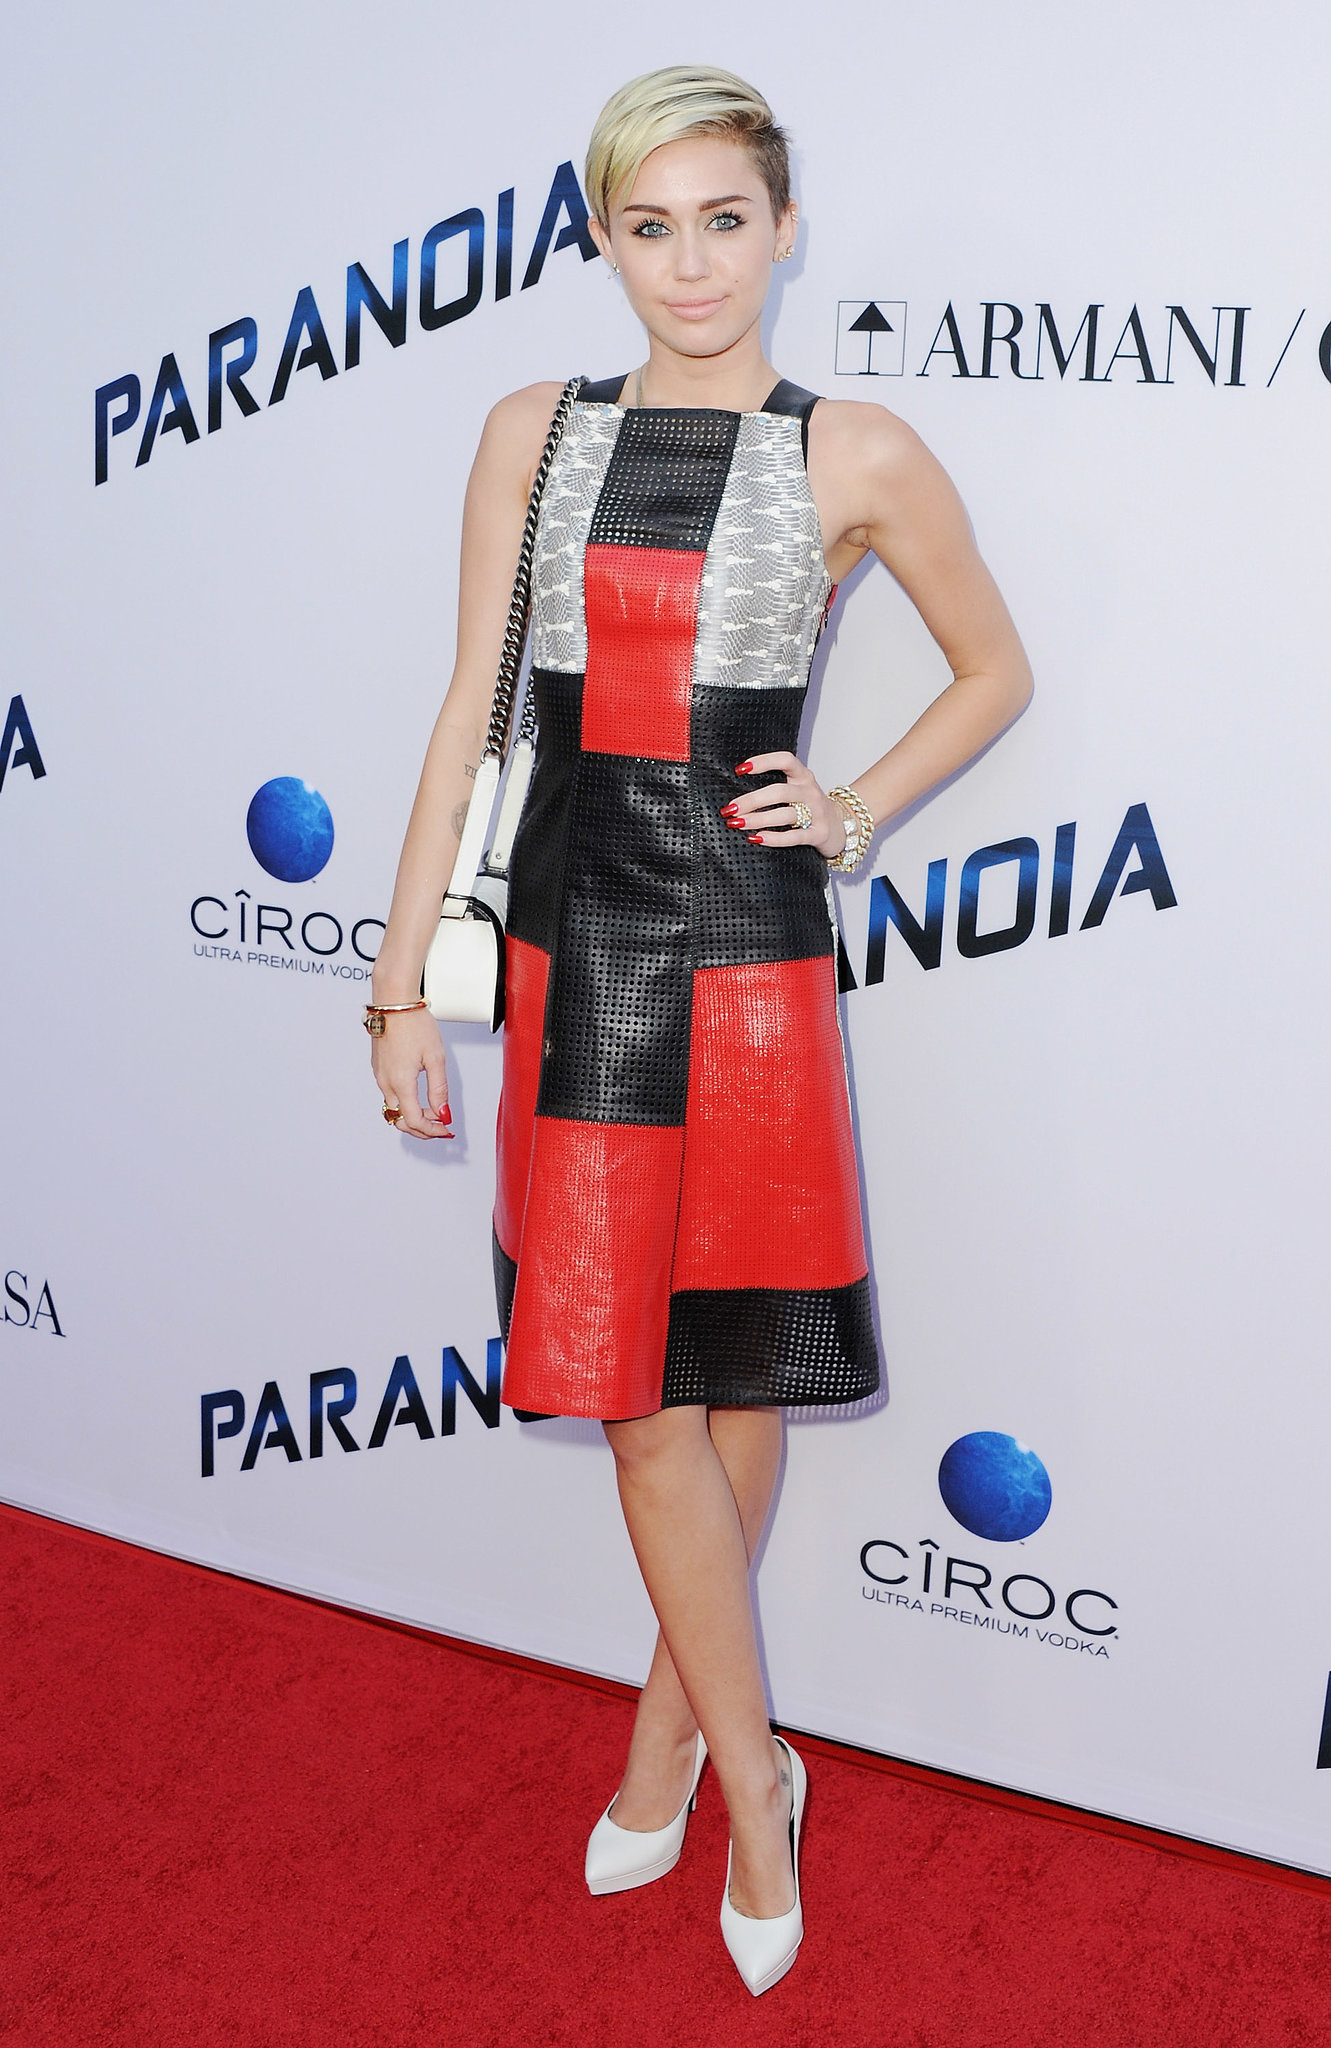 Cyrus stayed true to her signature color palette — red, black, and white — in a patchwork Proenza Schouler dress accessorized with a Chanel bag, Cartier nail bracelet, and white pumps at the LA premiere of Paranoia.